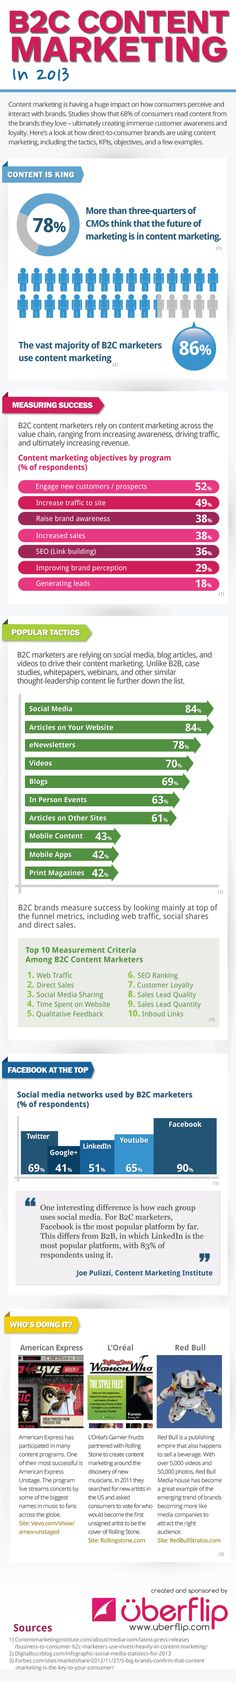 Social Media, Video & Blogs - B2C Content Marketing In 2013